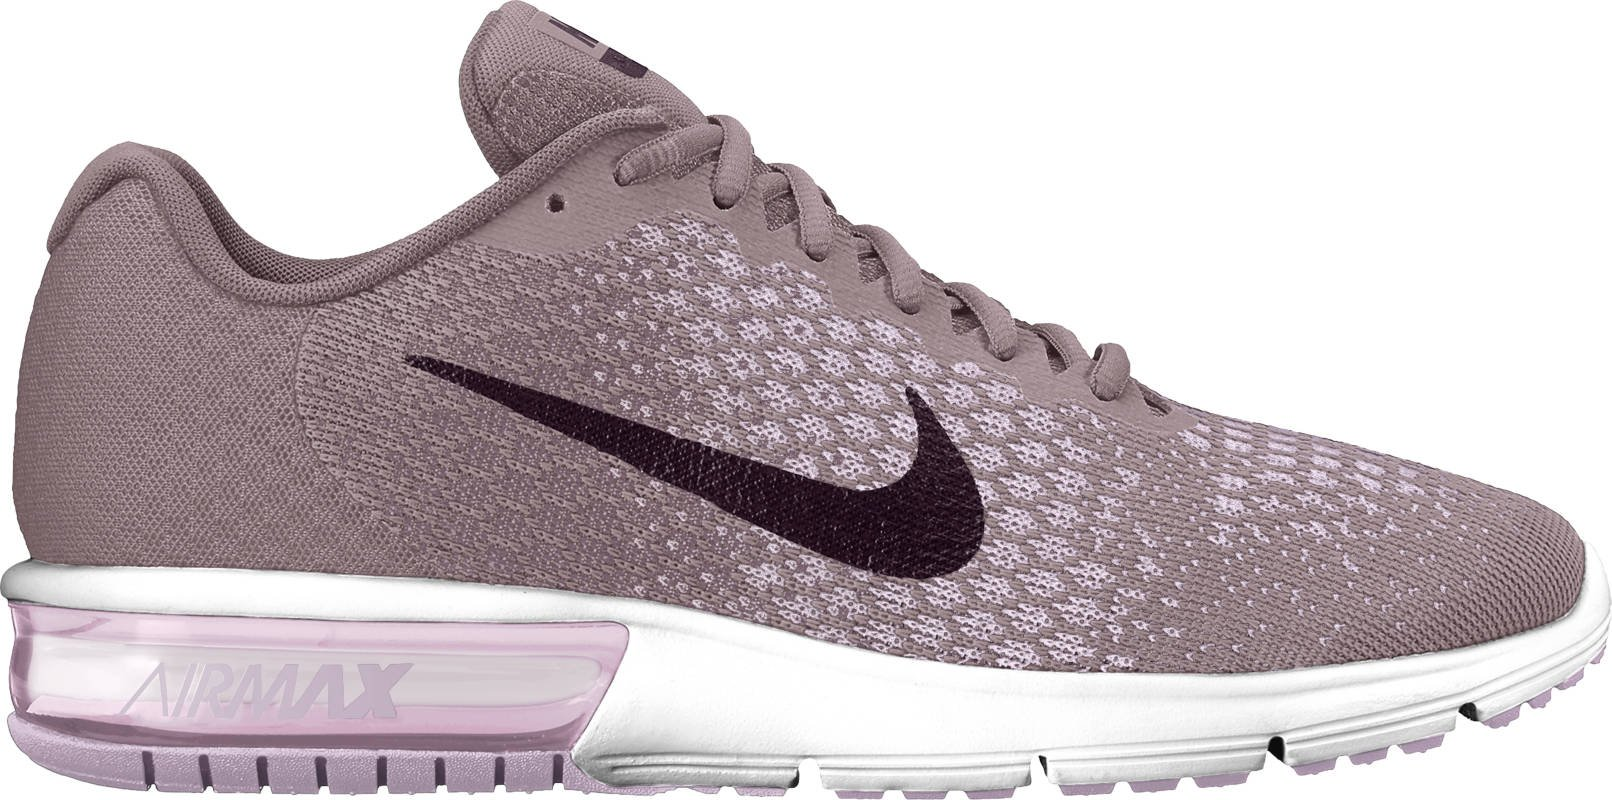 Nike Air Max Sequent 2 Size 7.5 Womens Running Taupe GreyPort Wine Plum Fog Iced Lilac Shoes